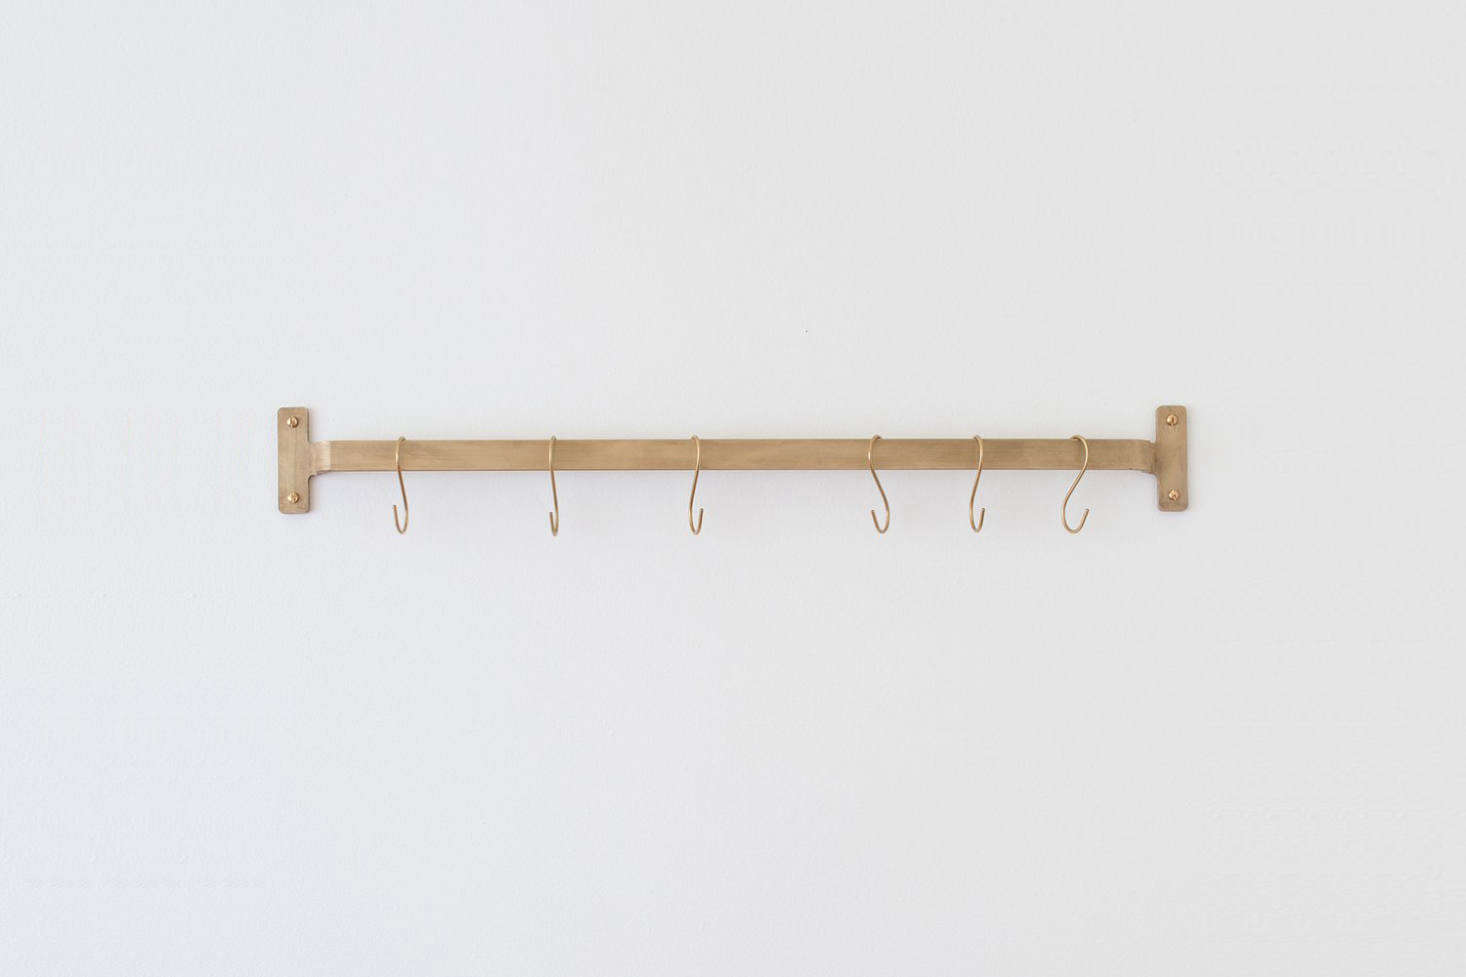 The Nicolai Utility Rail in Natural Brass that hangs on the kitchen wall is $9 at Schoolhouse.